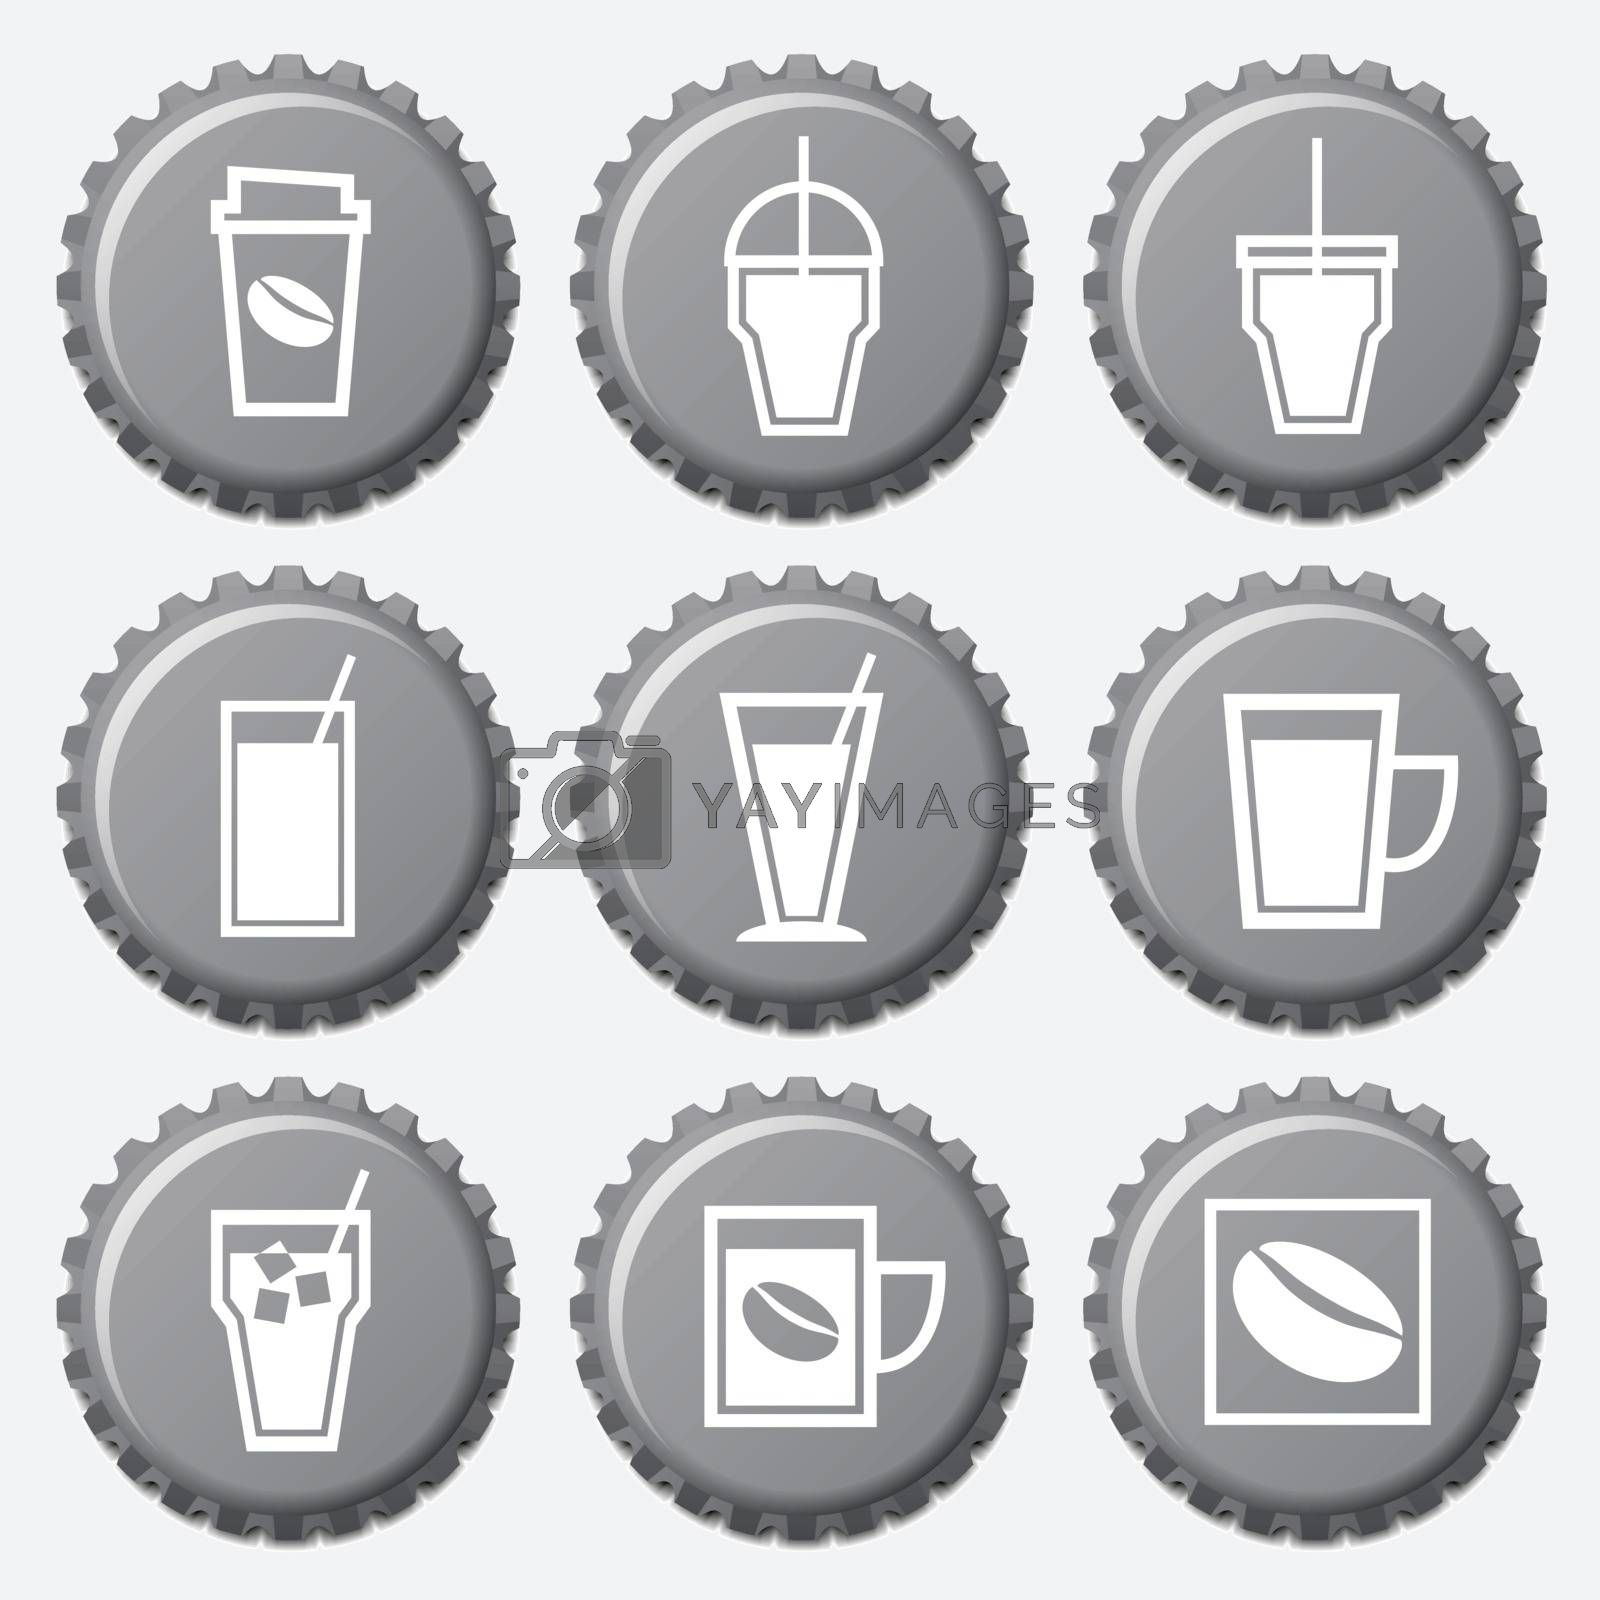 Coffee cup icon on bottle caps set, vector illustration